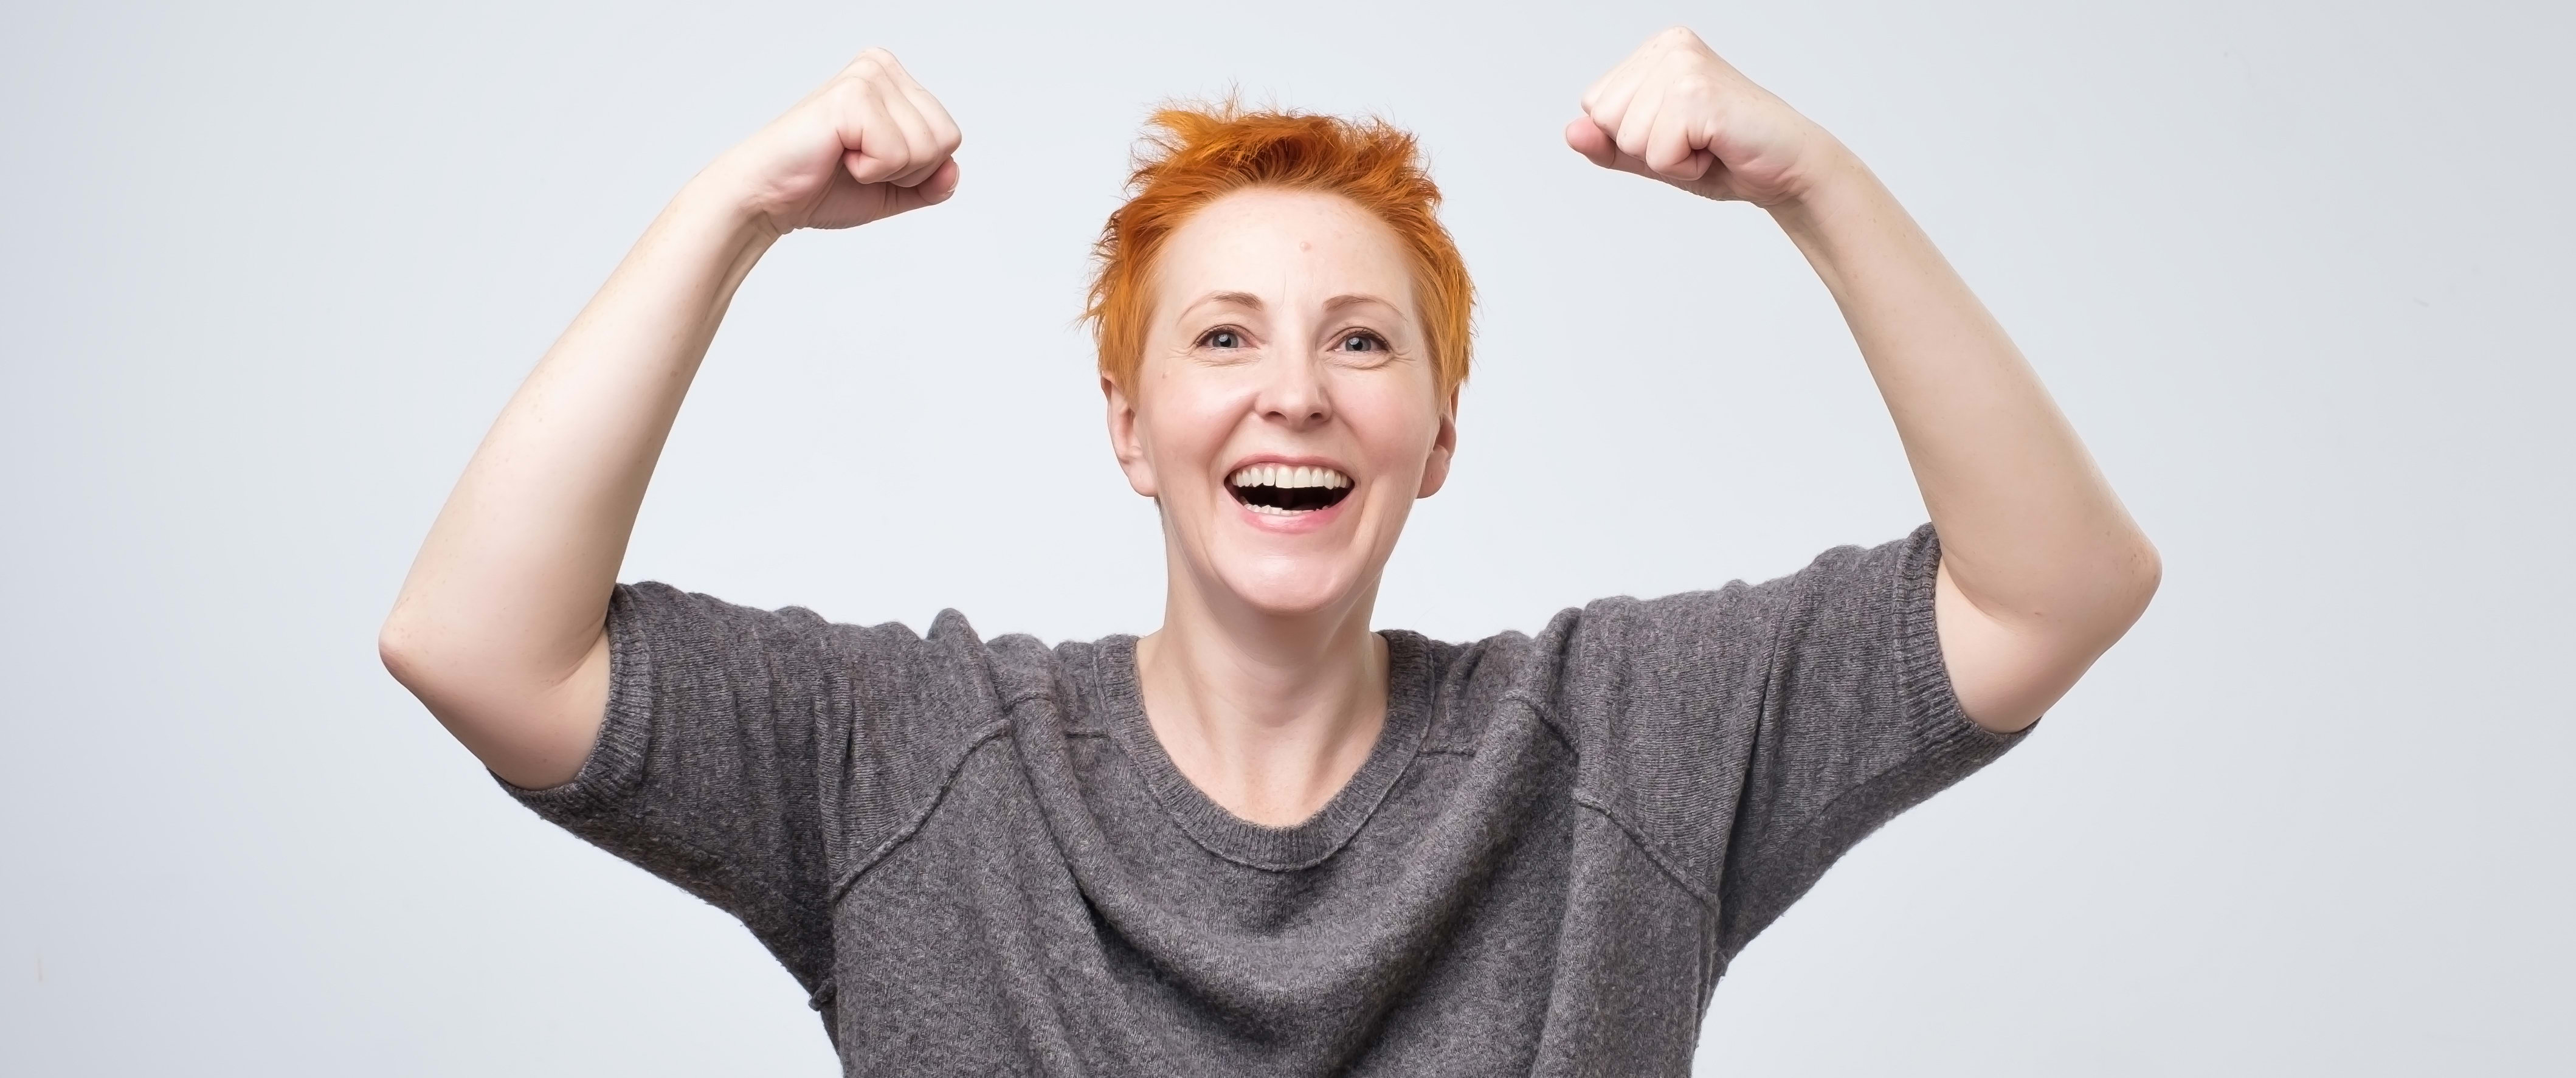 Flex Cup Hero Image of a Woman With Short Hair